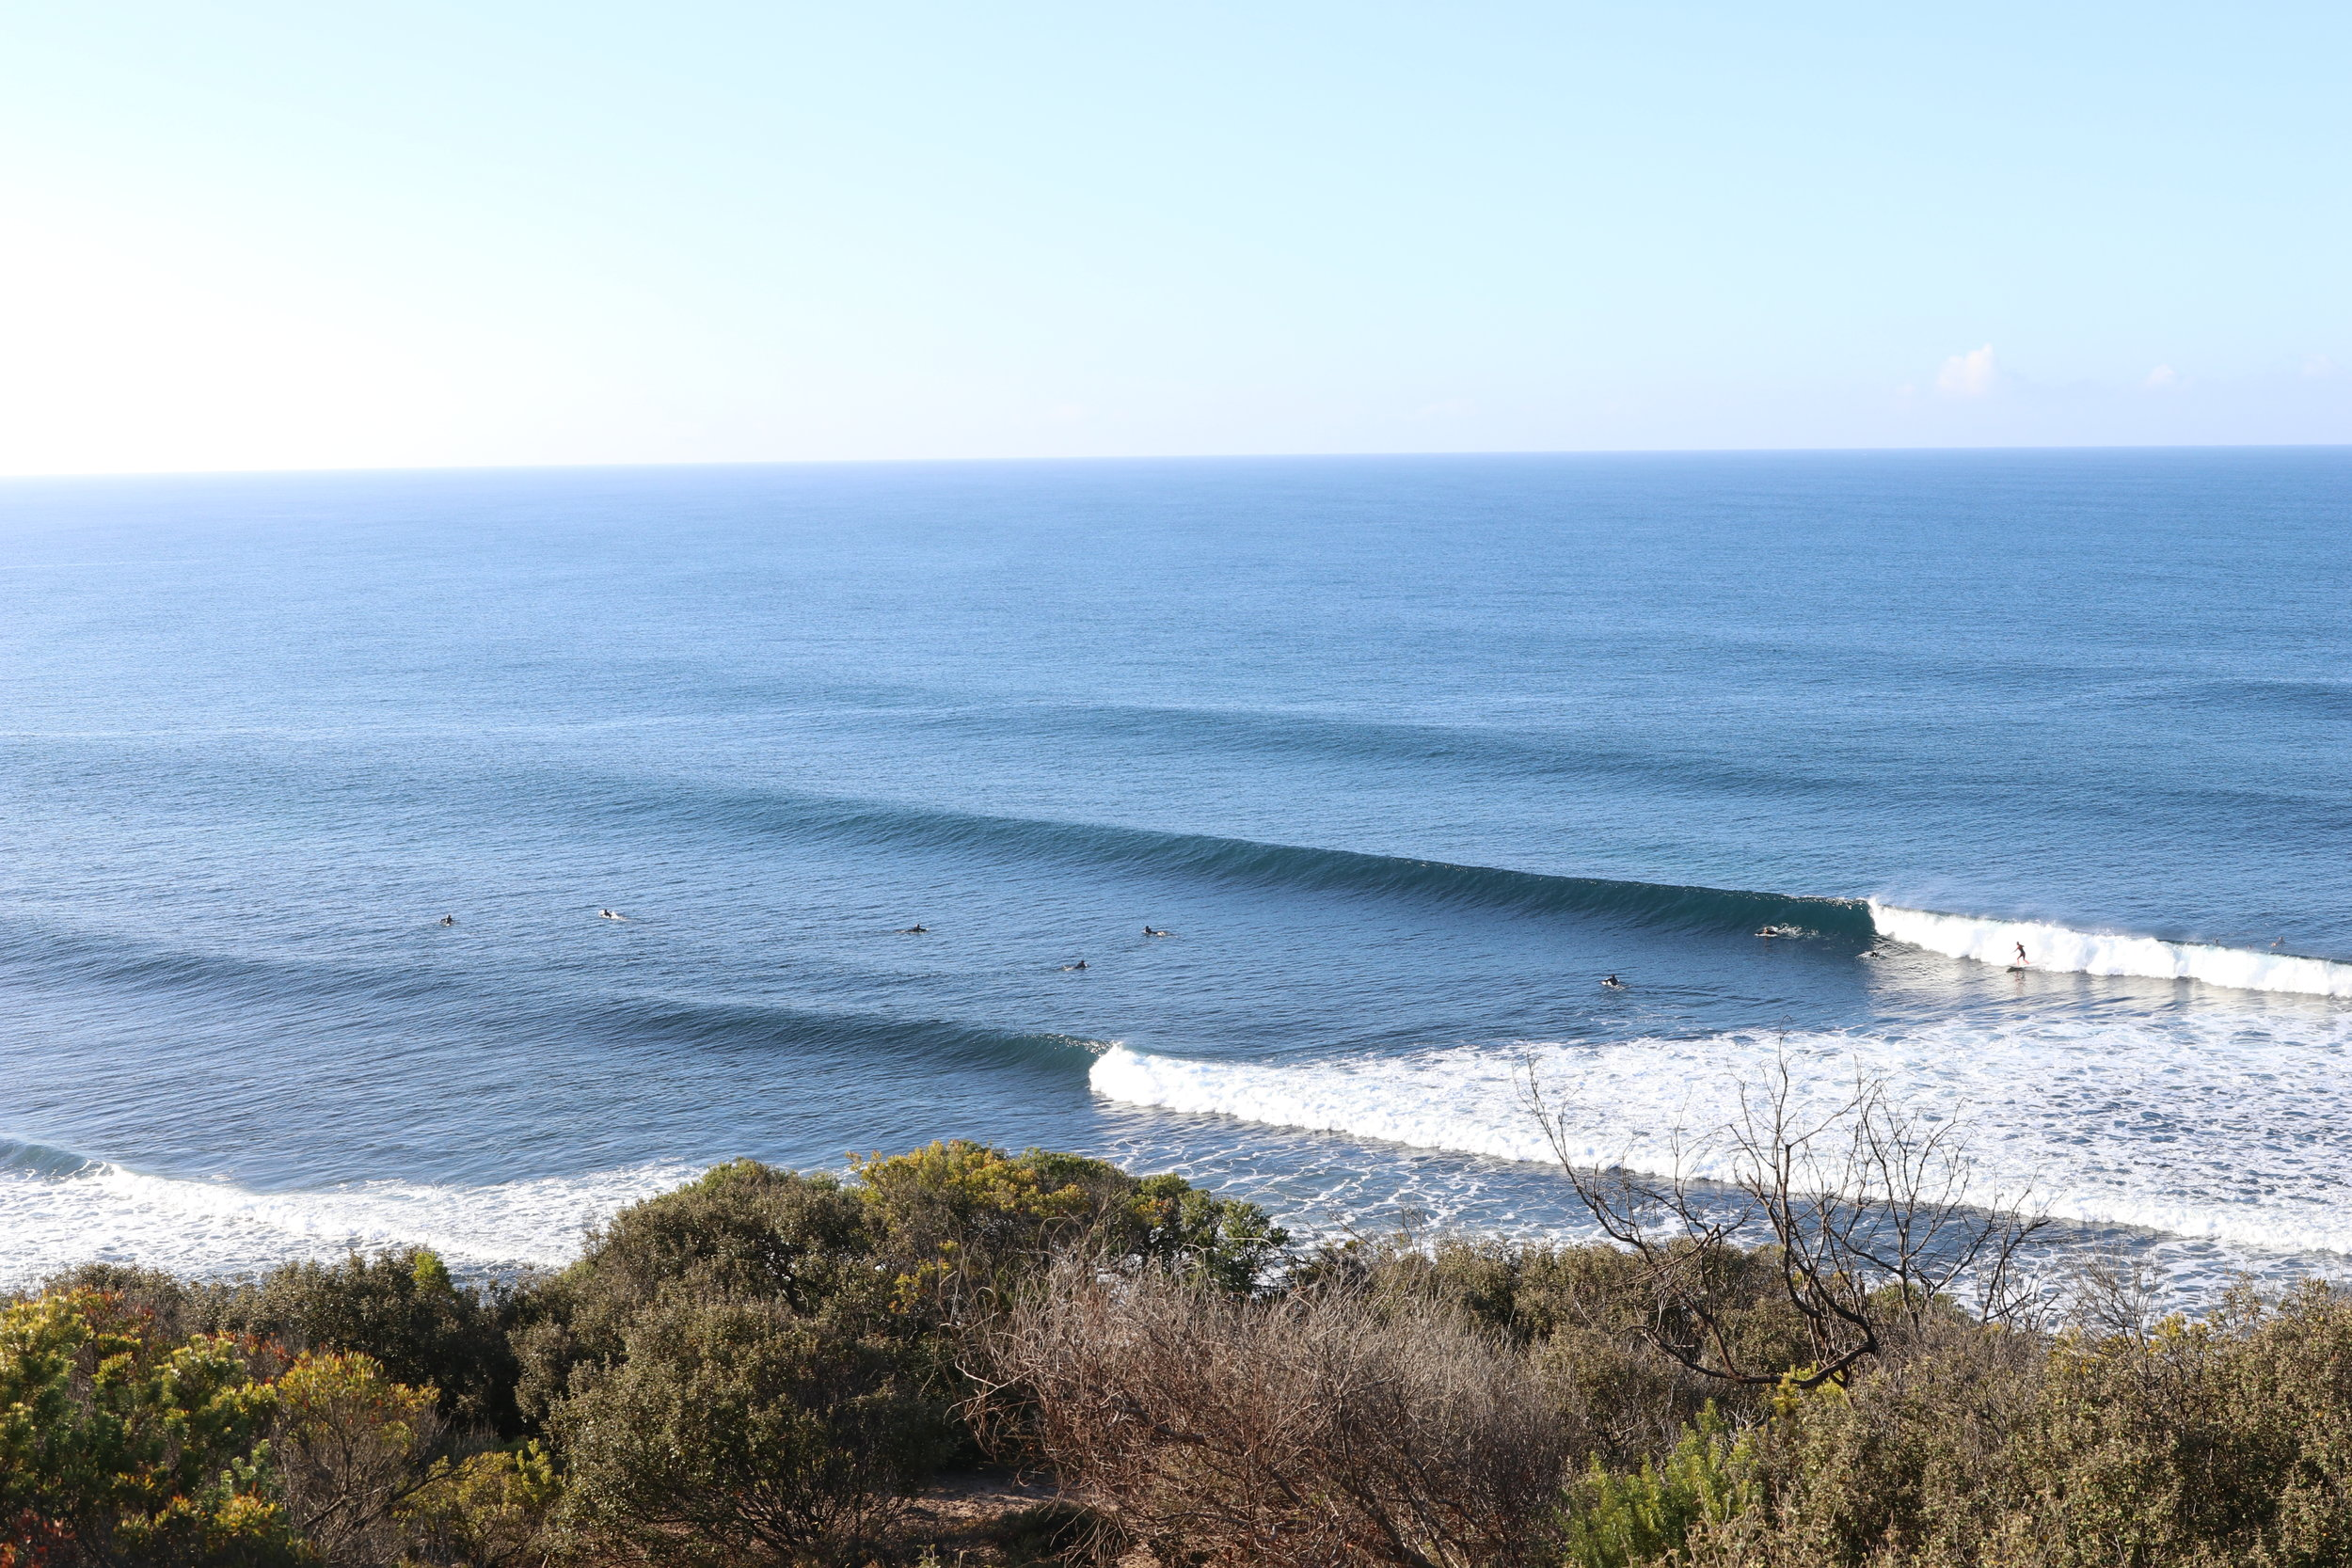 Bells and Winki Pop don't need much explanation. A fast, lined up point break perfect for the fish.